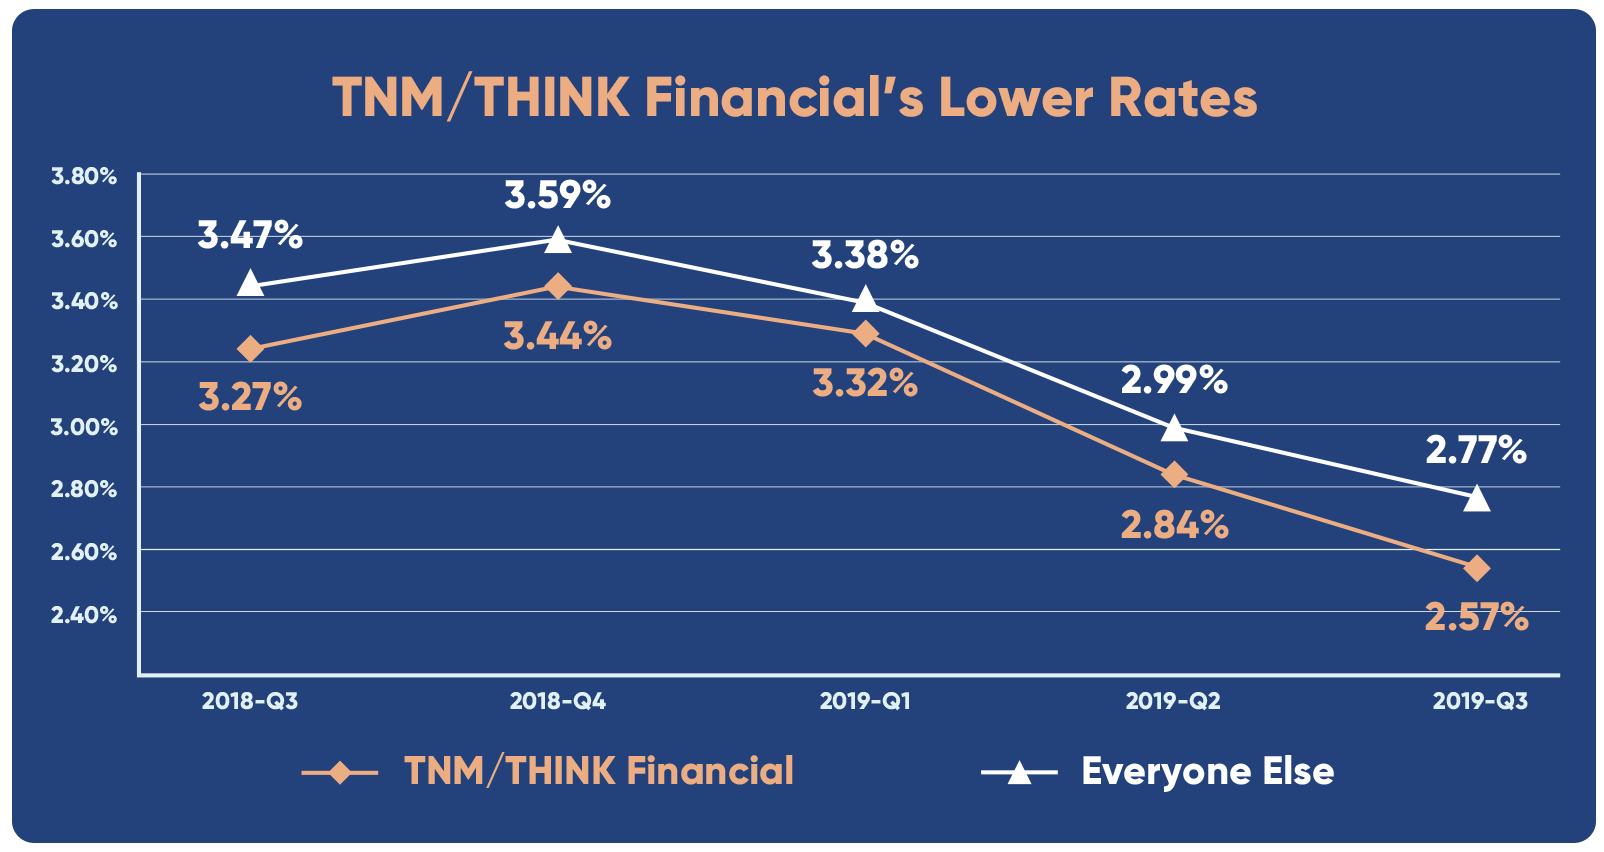 TNM/THINK Financial's Lower Rates